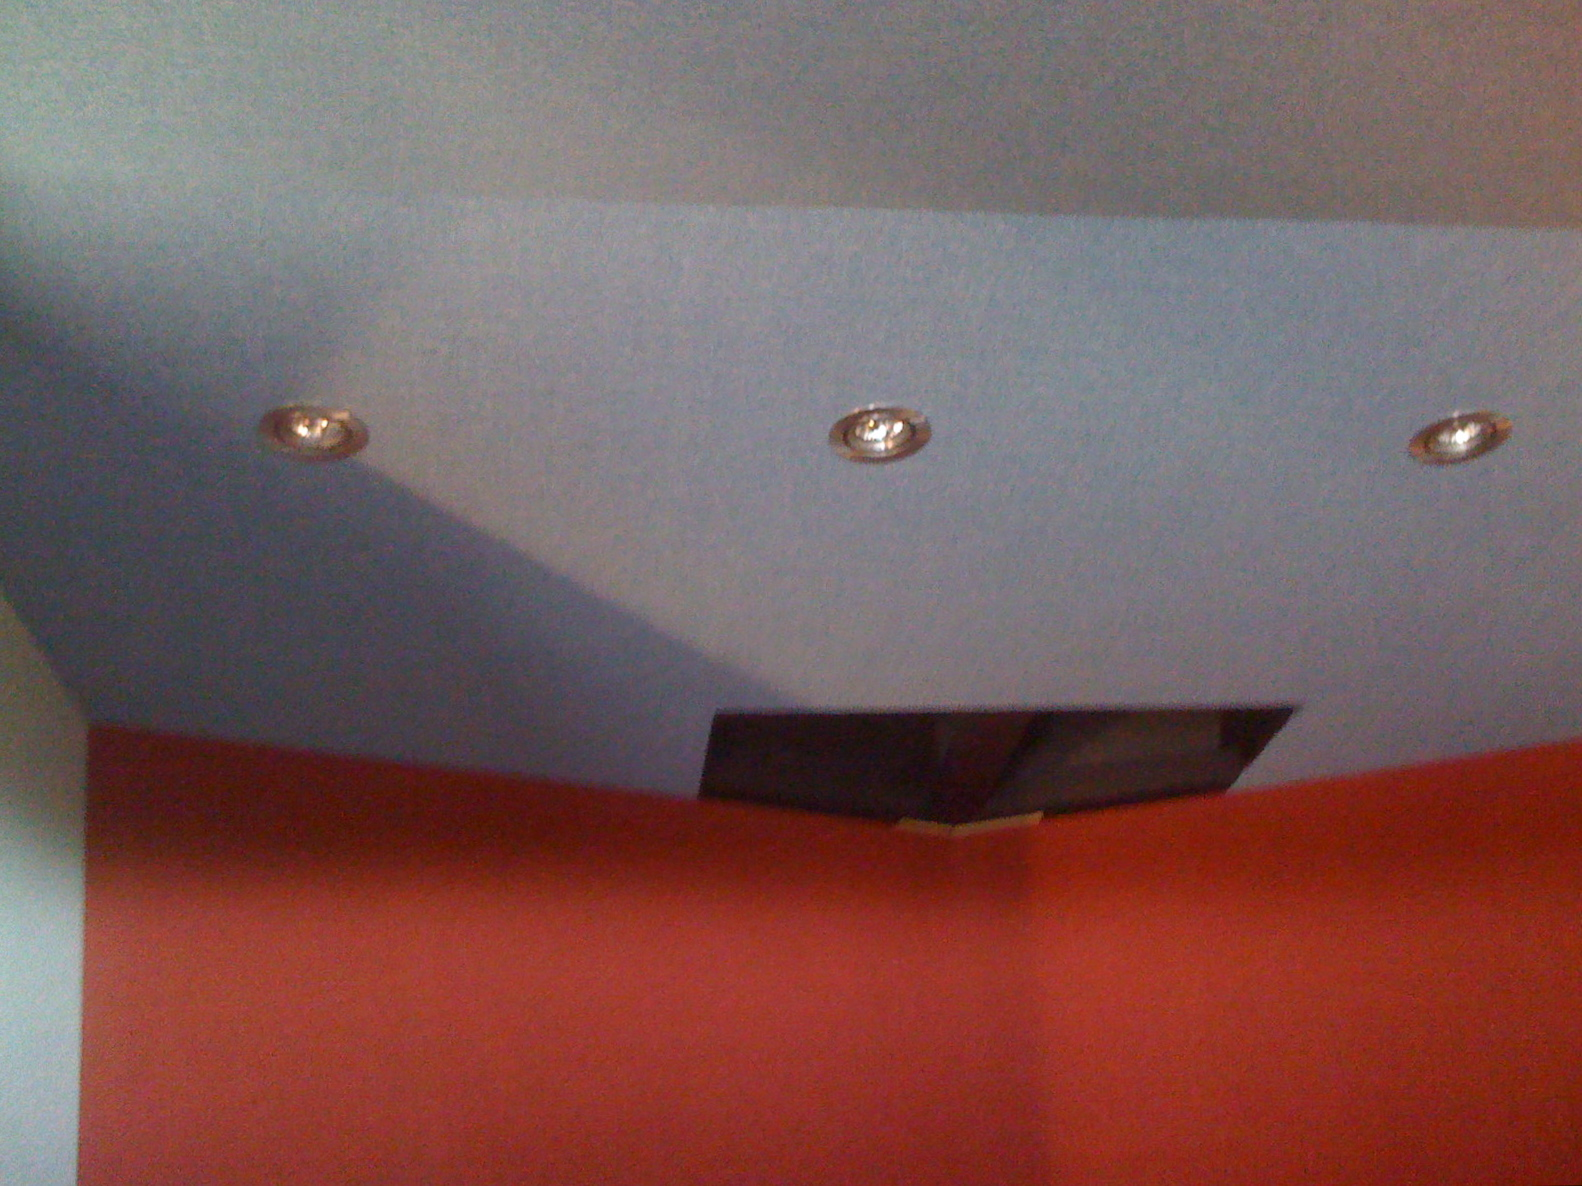 Control room light fittings - these will be directly over the engineer/work area.